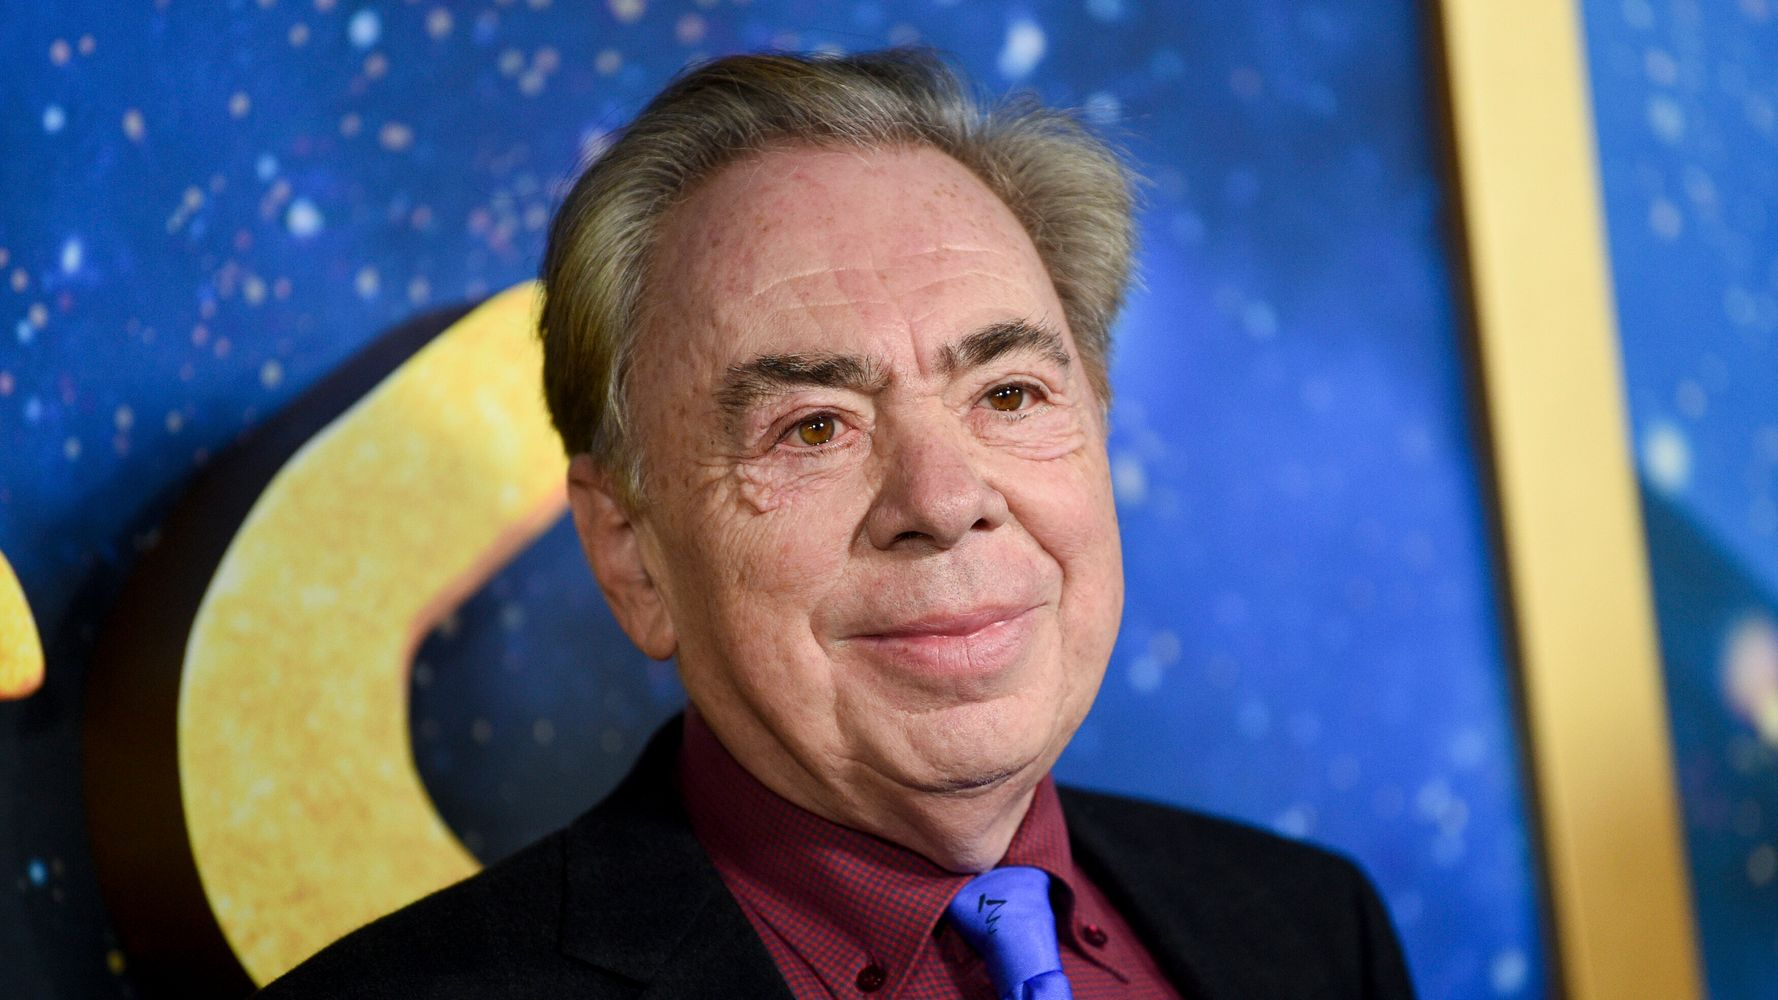 Andrew Lloyd Webber Hated 'Cats' Movie So Much He Got His First Dog